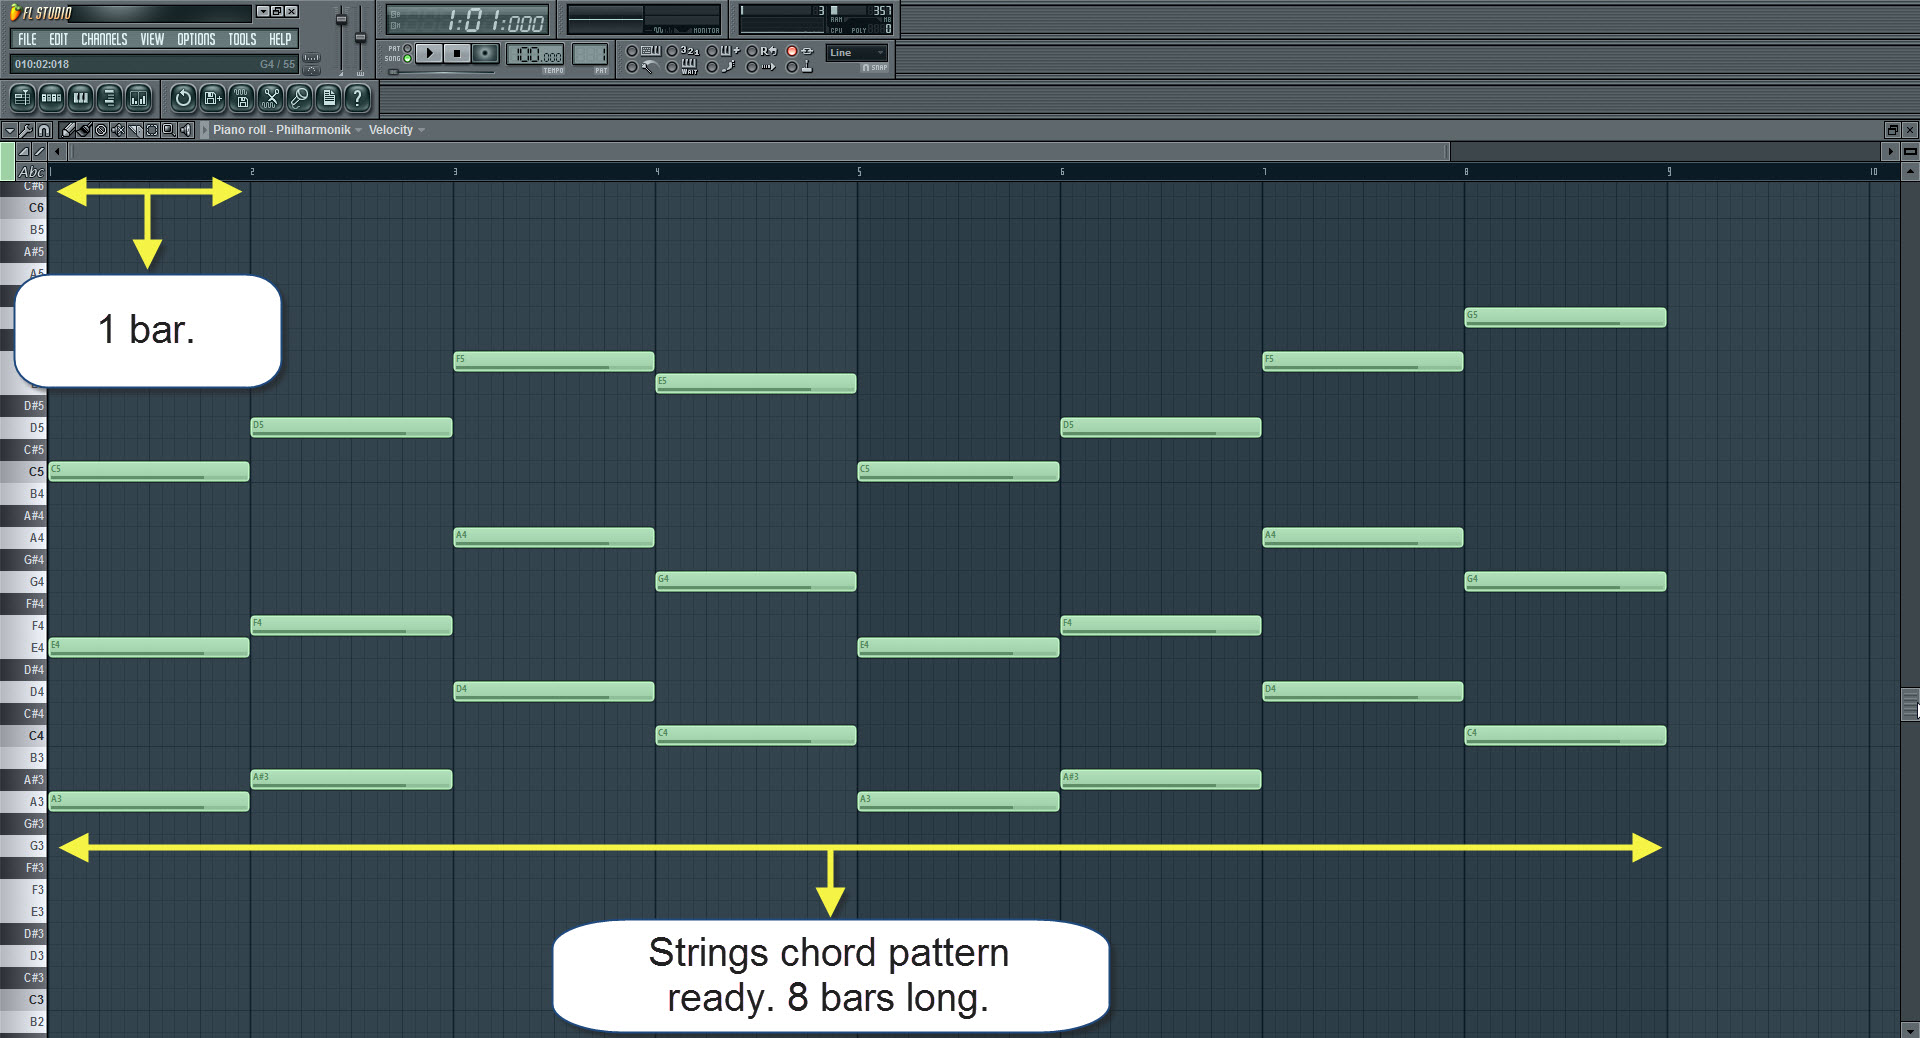 How To Make A Song in FL Studio? Start With The Chords | HTMEM